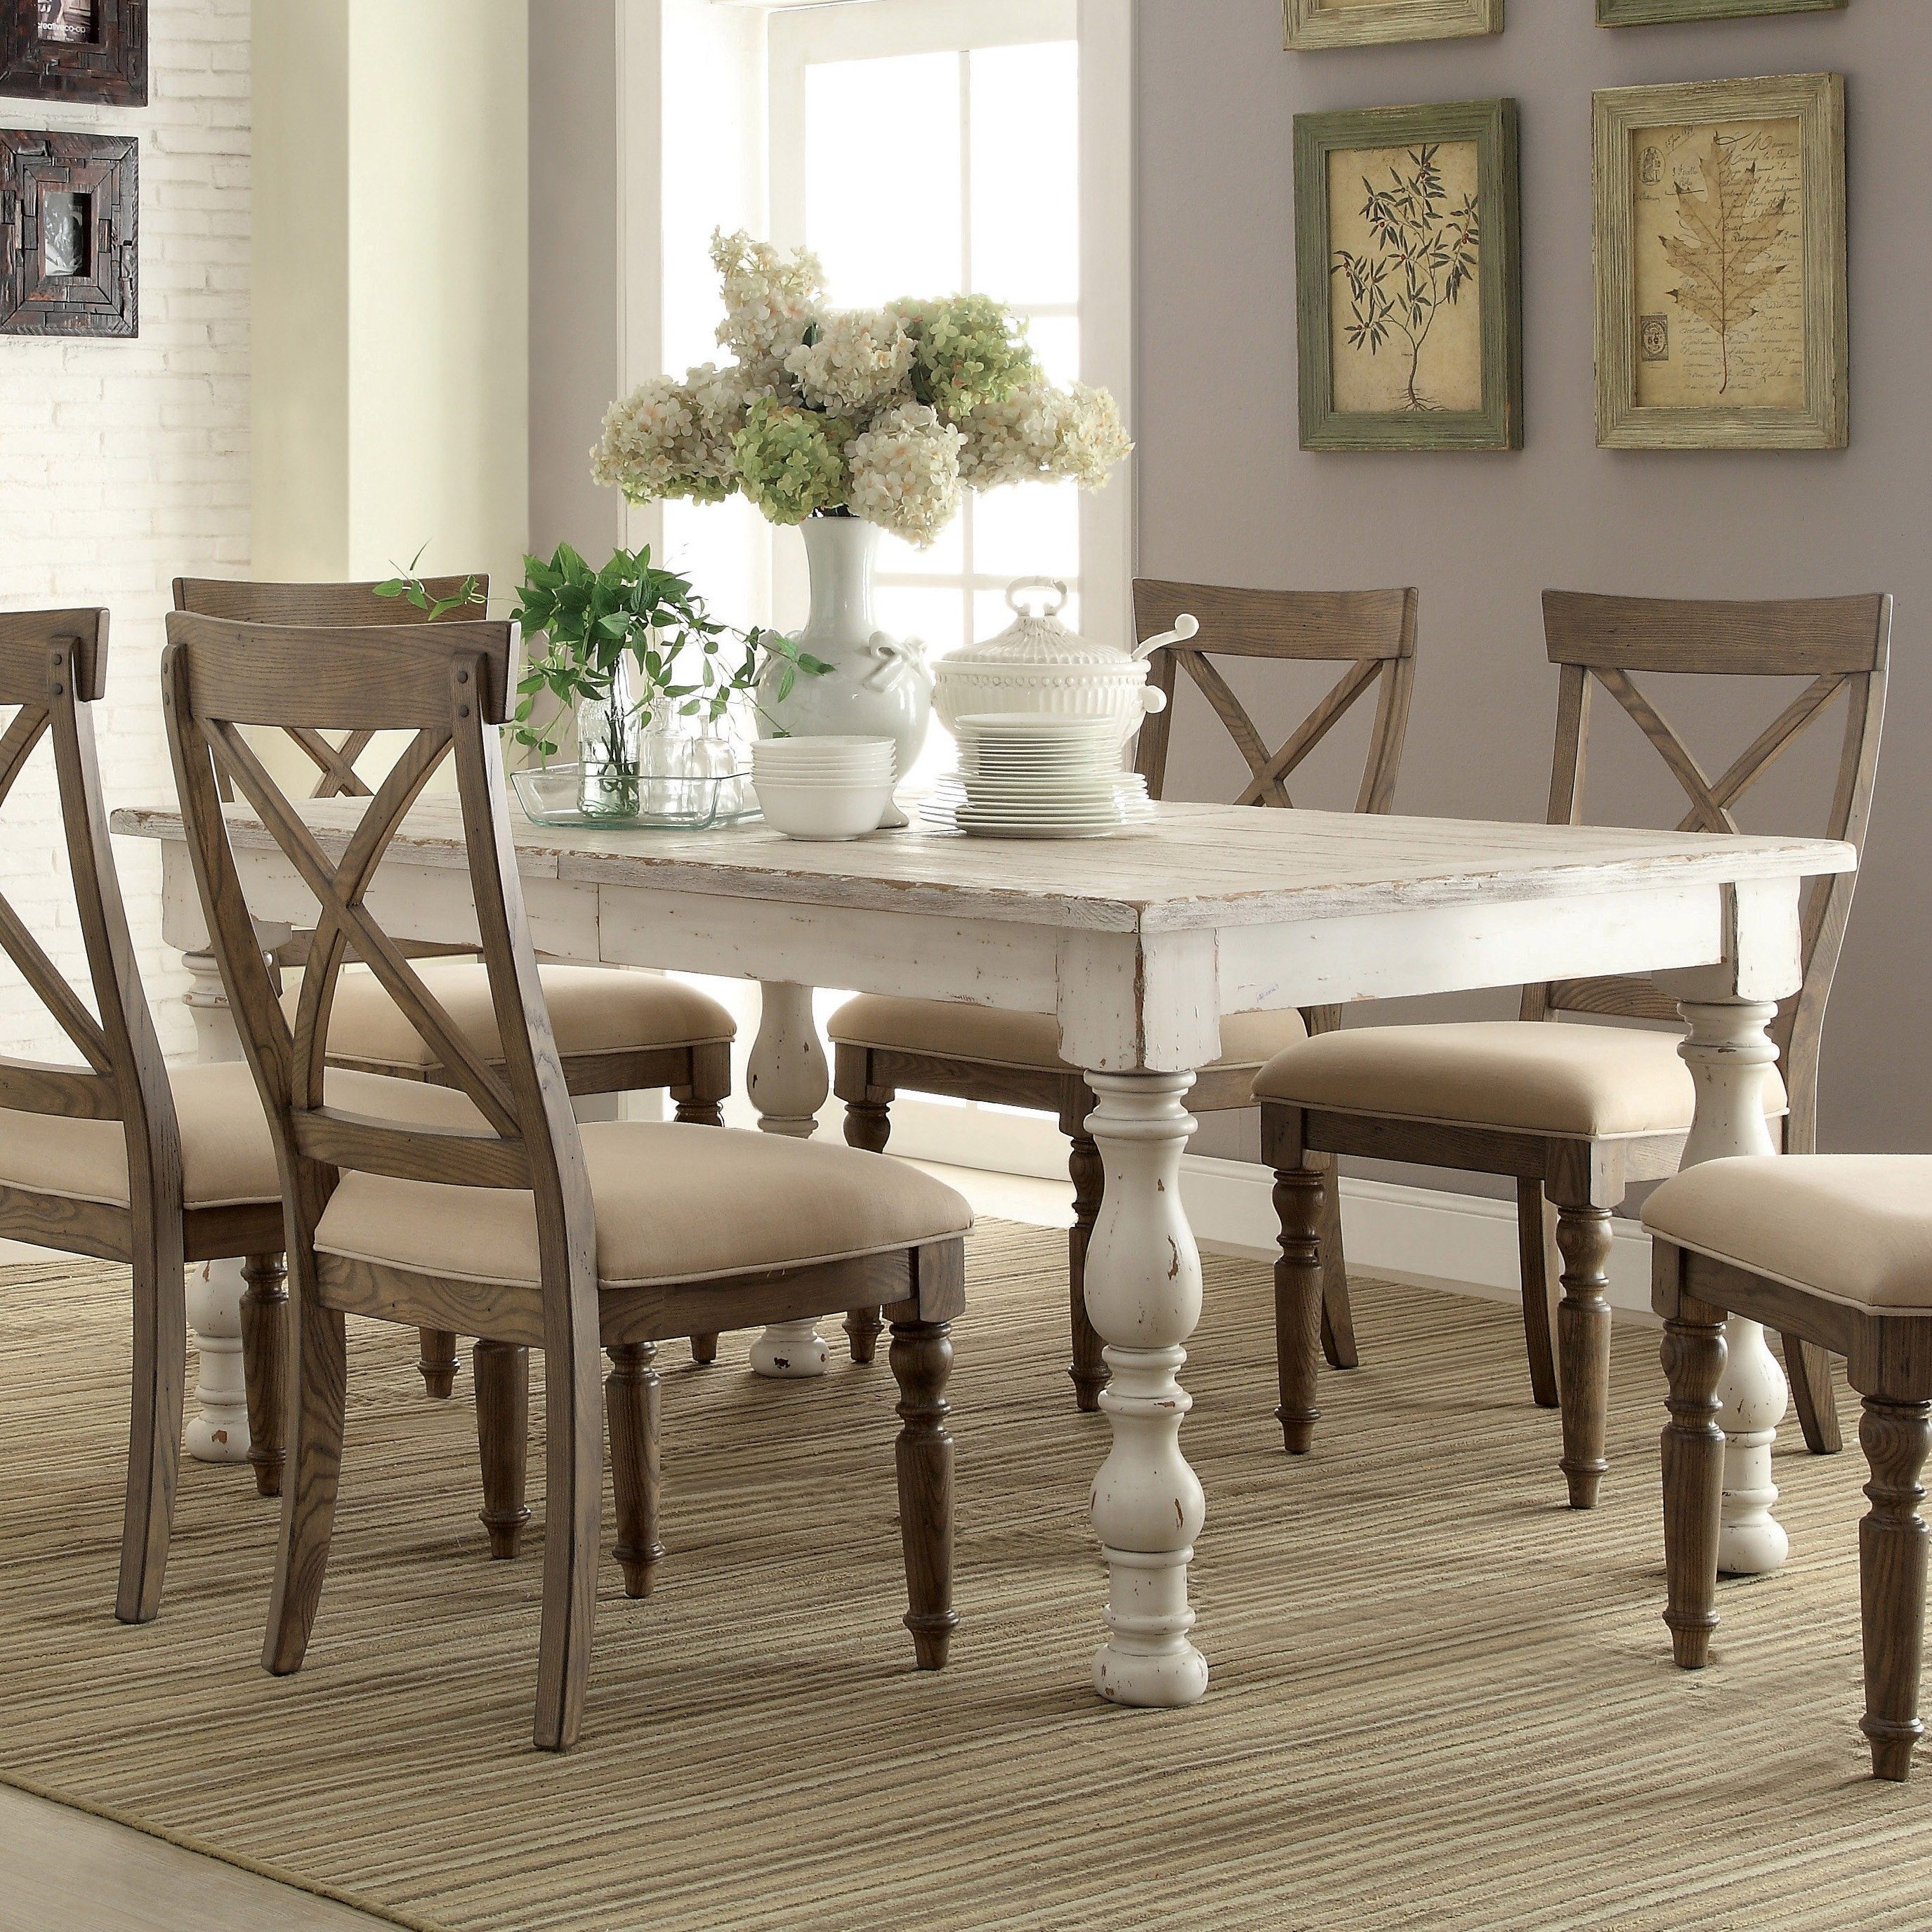 Aberdeen wood rectangular dining table and chairs in for Small white dining table set